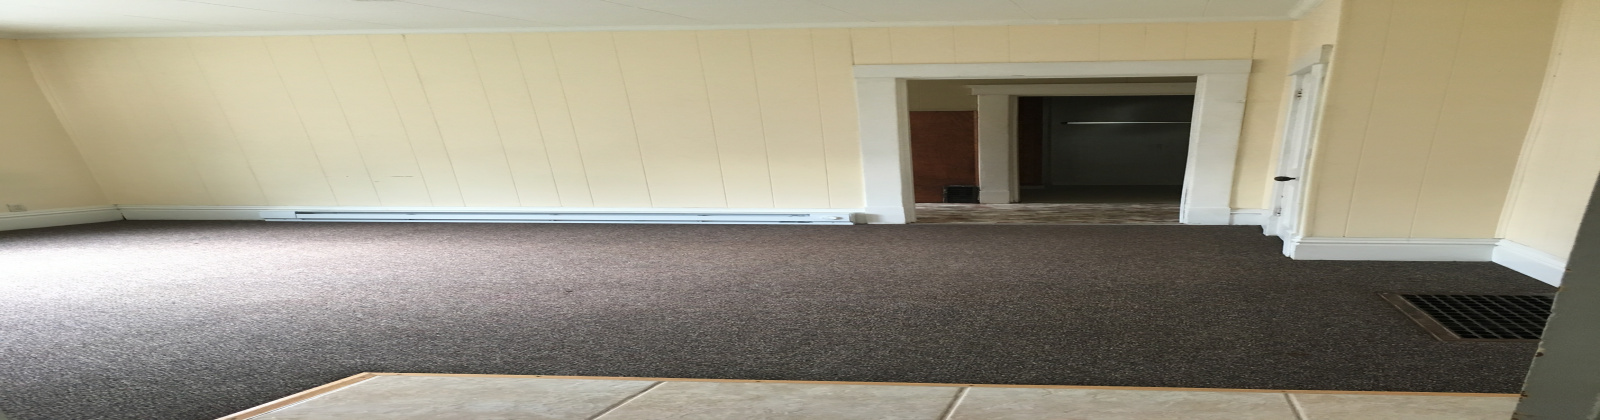 1 N May Ave. APT 2 Athens, Ohio, 1 Bedroom Bedrooms, ,1 BathroomBathrooms,Apartment,For Rent,N May,1080